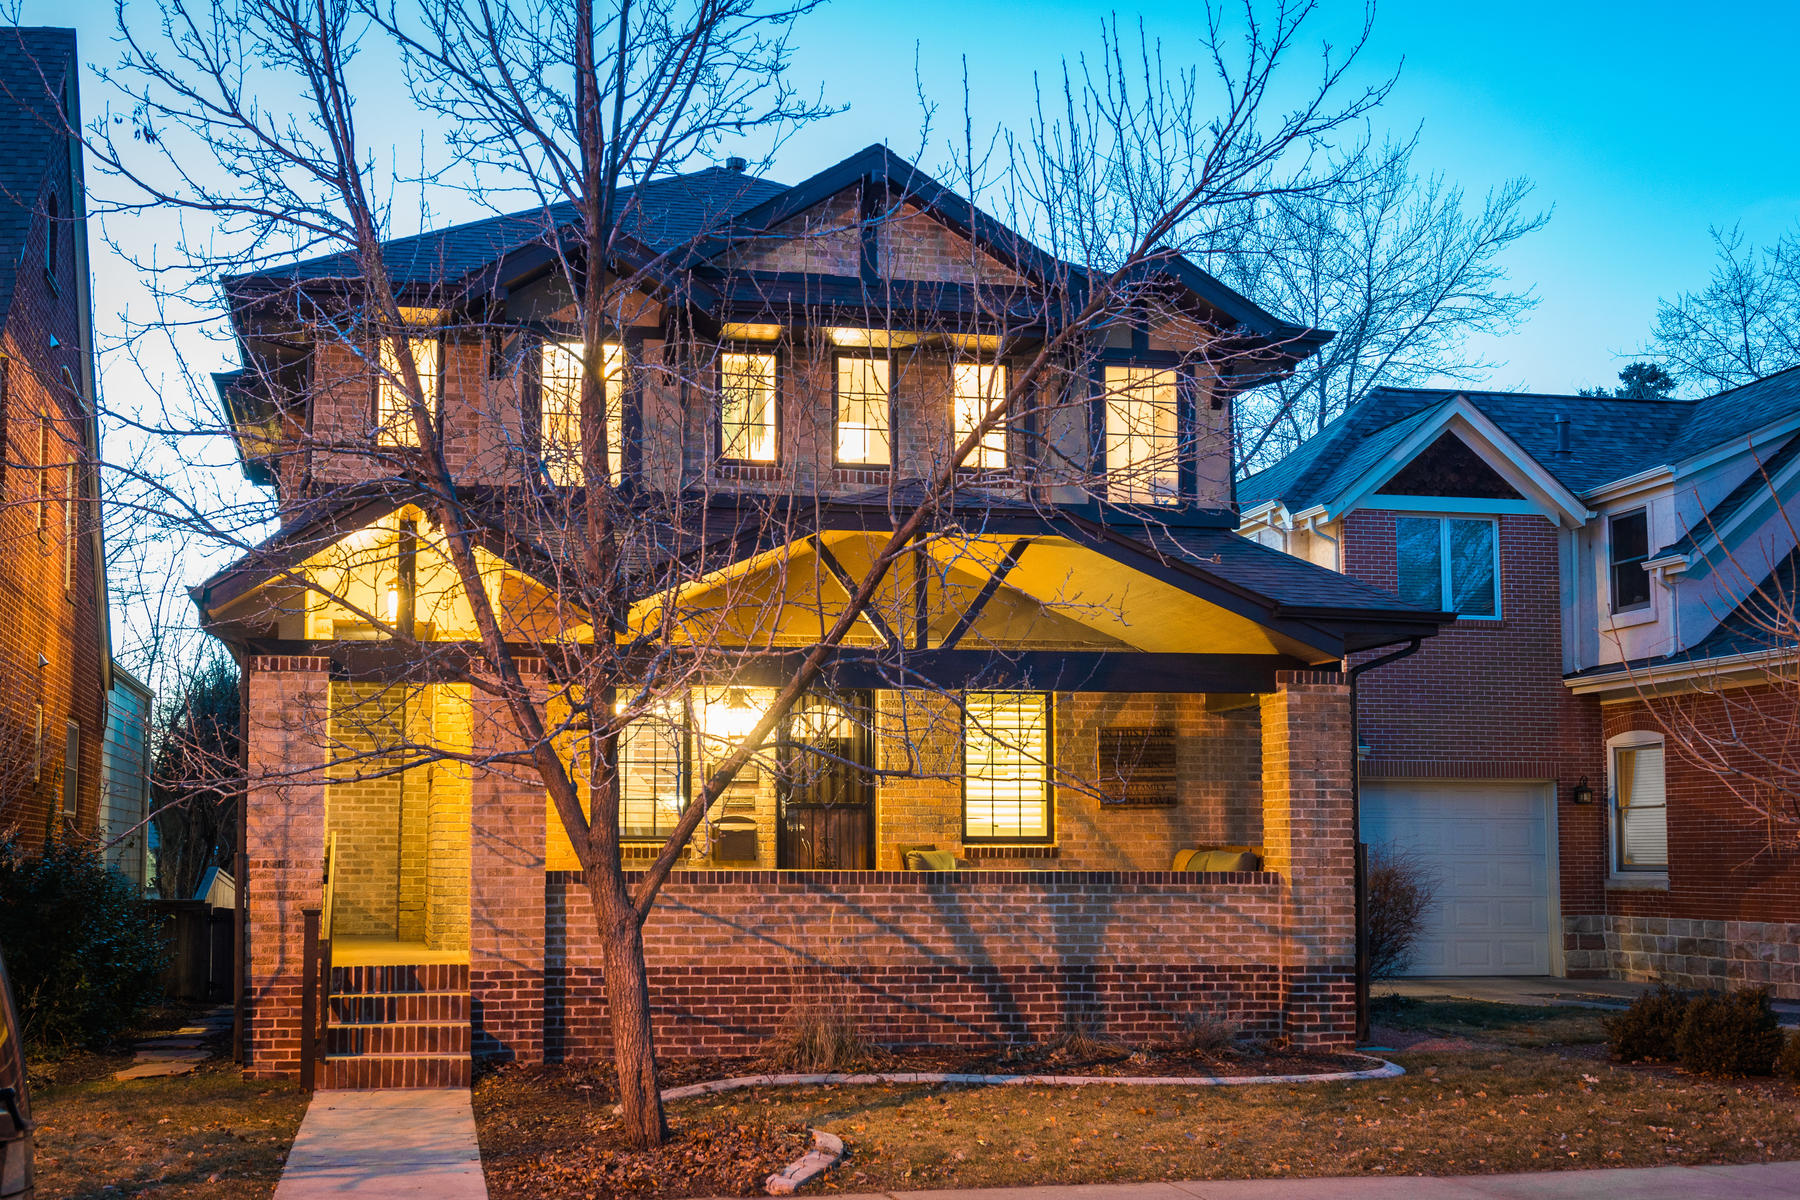 Single Family Home for Active at Brilliant and ultra-cozy East Wash Park space created for entertaining! 545 S Race St Denver, Colorado 80209 United States